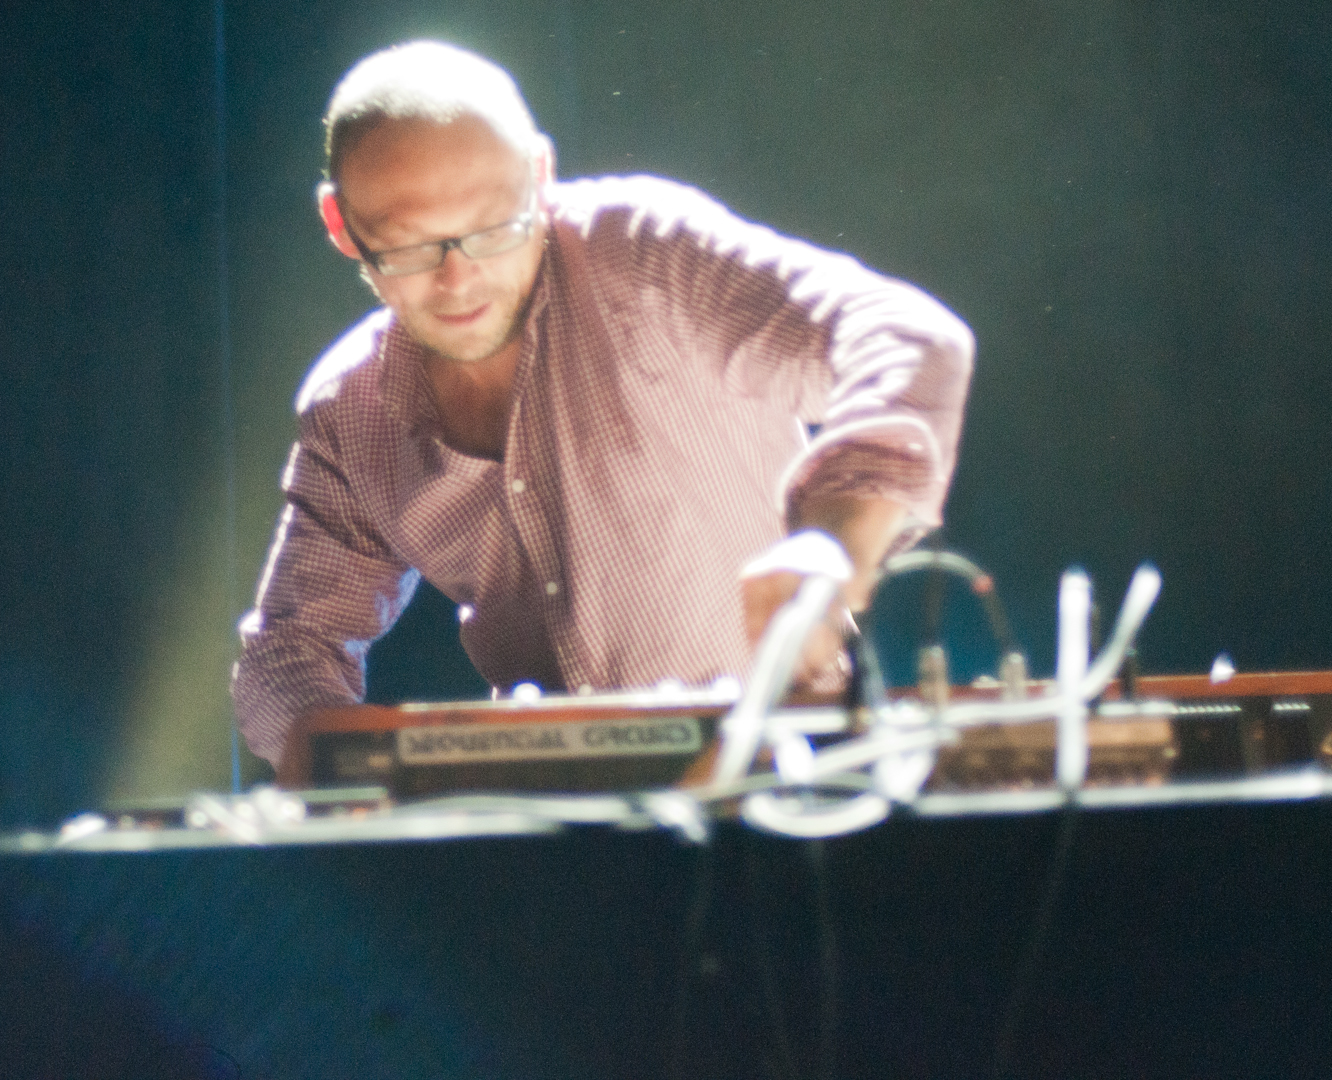 Bugge Wesseltoft at the Olso Jazz Festival